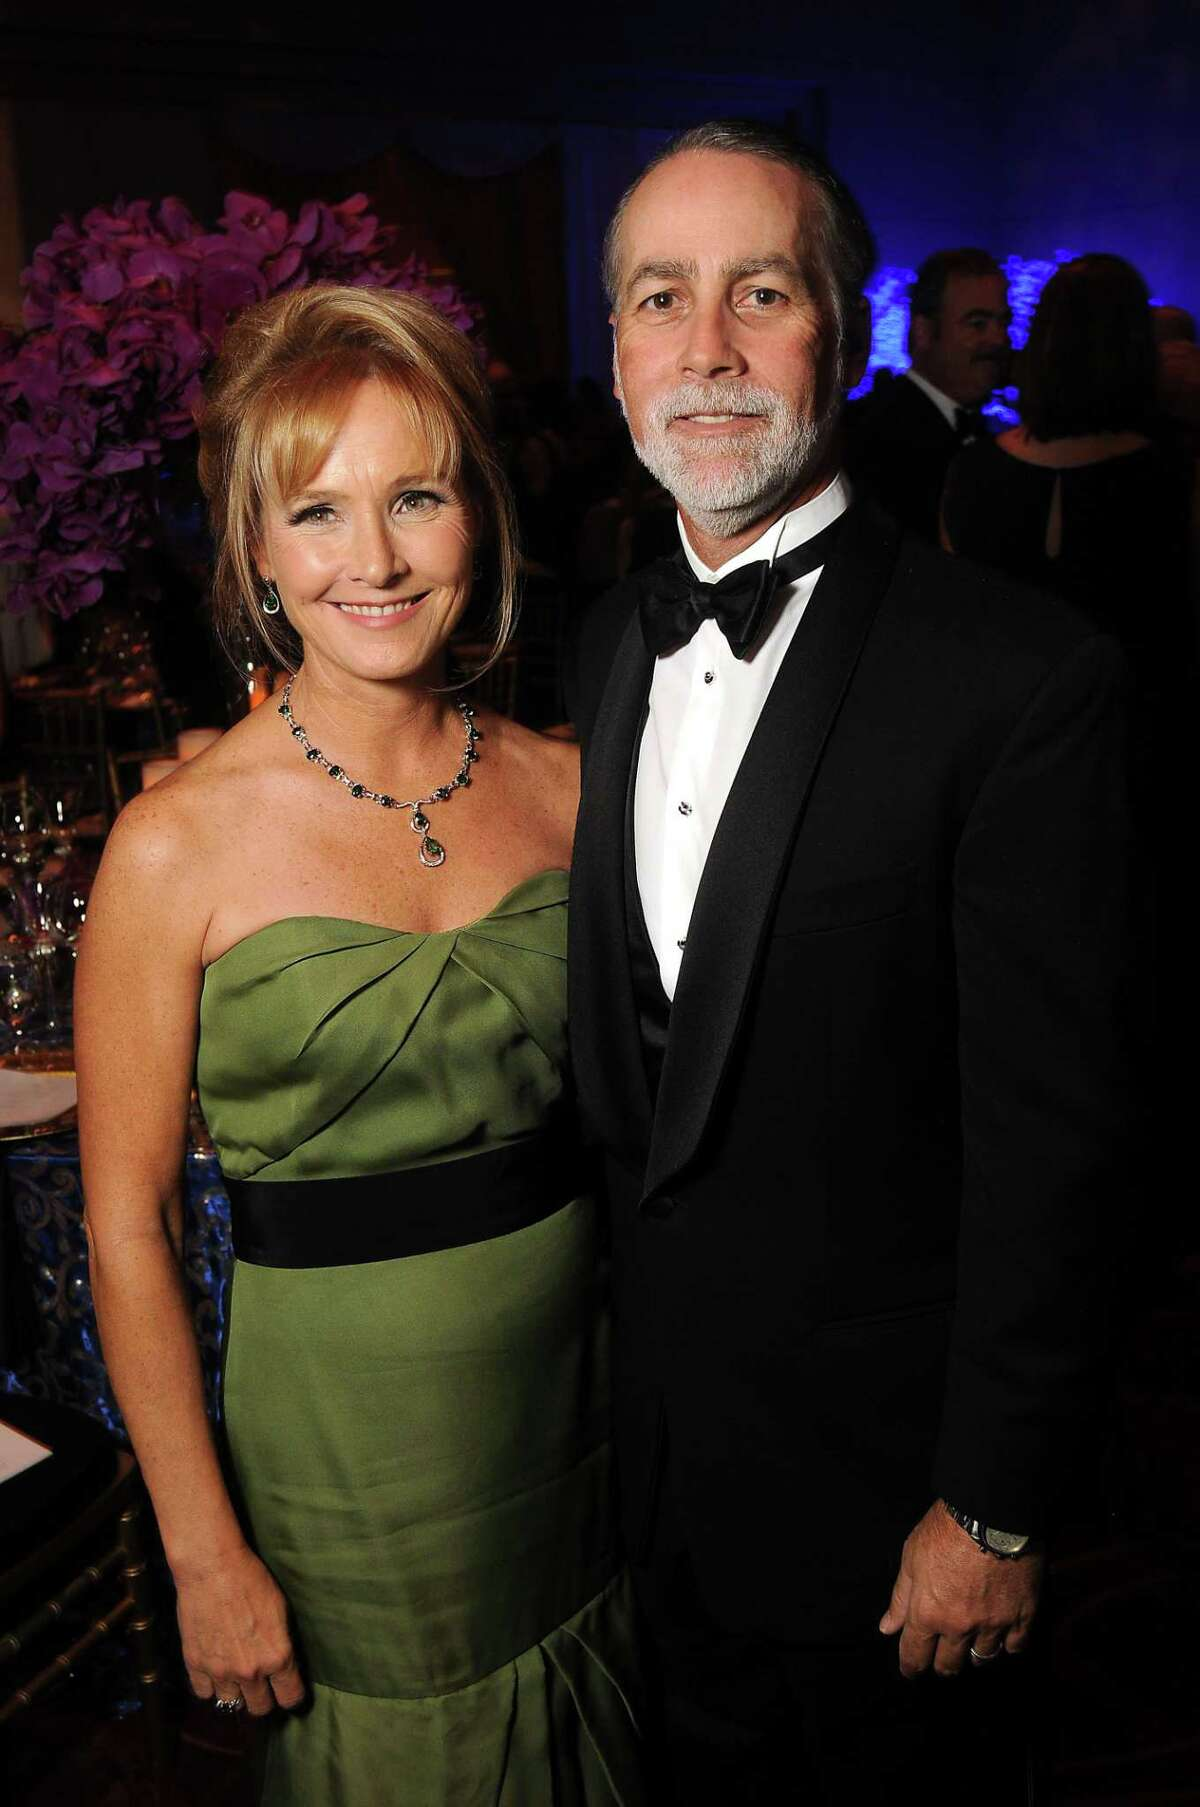 Randa and Charlie Williams at the Audrey Hepburn Society Ball at the Wortham Theater Tuesday Oct 14, 2014.(Dave Rossman photo)